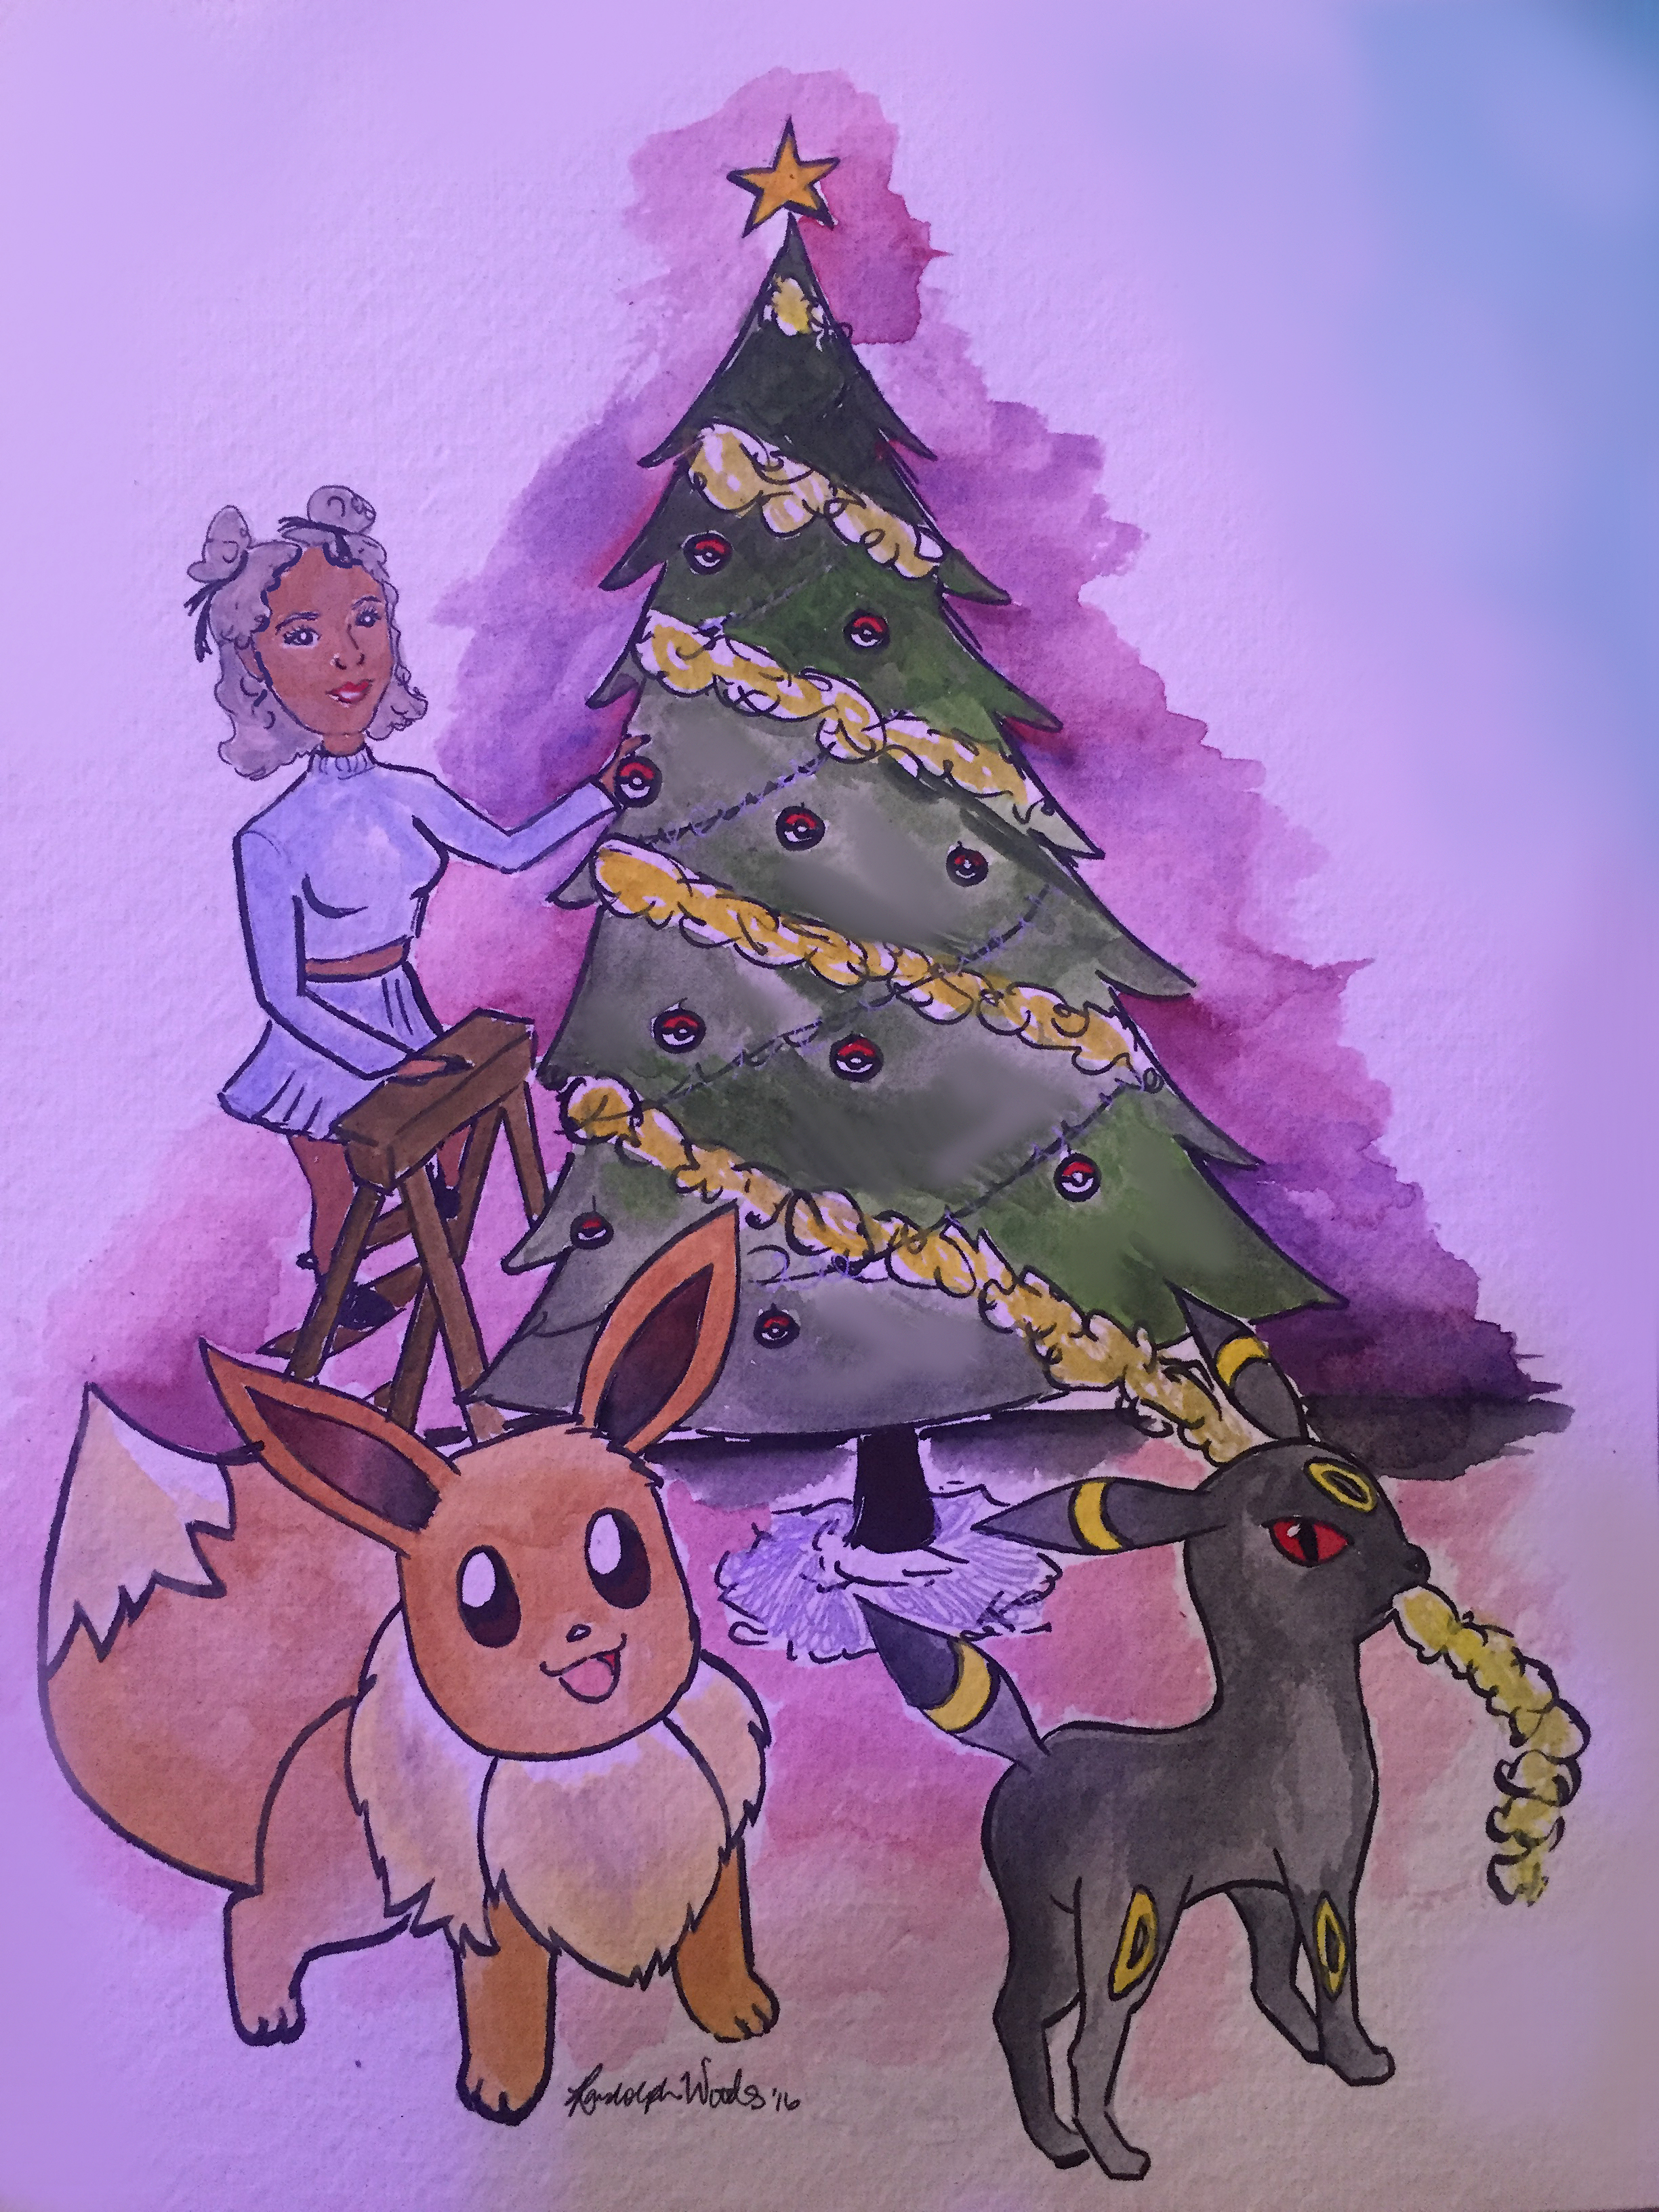 Bethani Randolph   The only non-electronic piece of the gallery was created by Chicago based artist, Bethani Randolph. A mixture of inking and watercolor, Bethani's festive scene between her and an Eevee and Umbreon stands out among the rest of the submissions.   Instagram